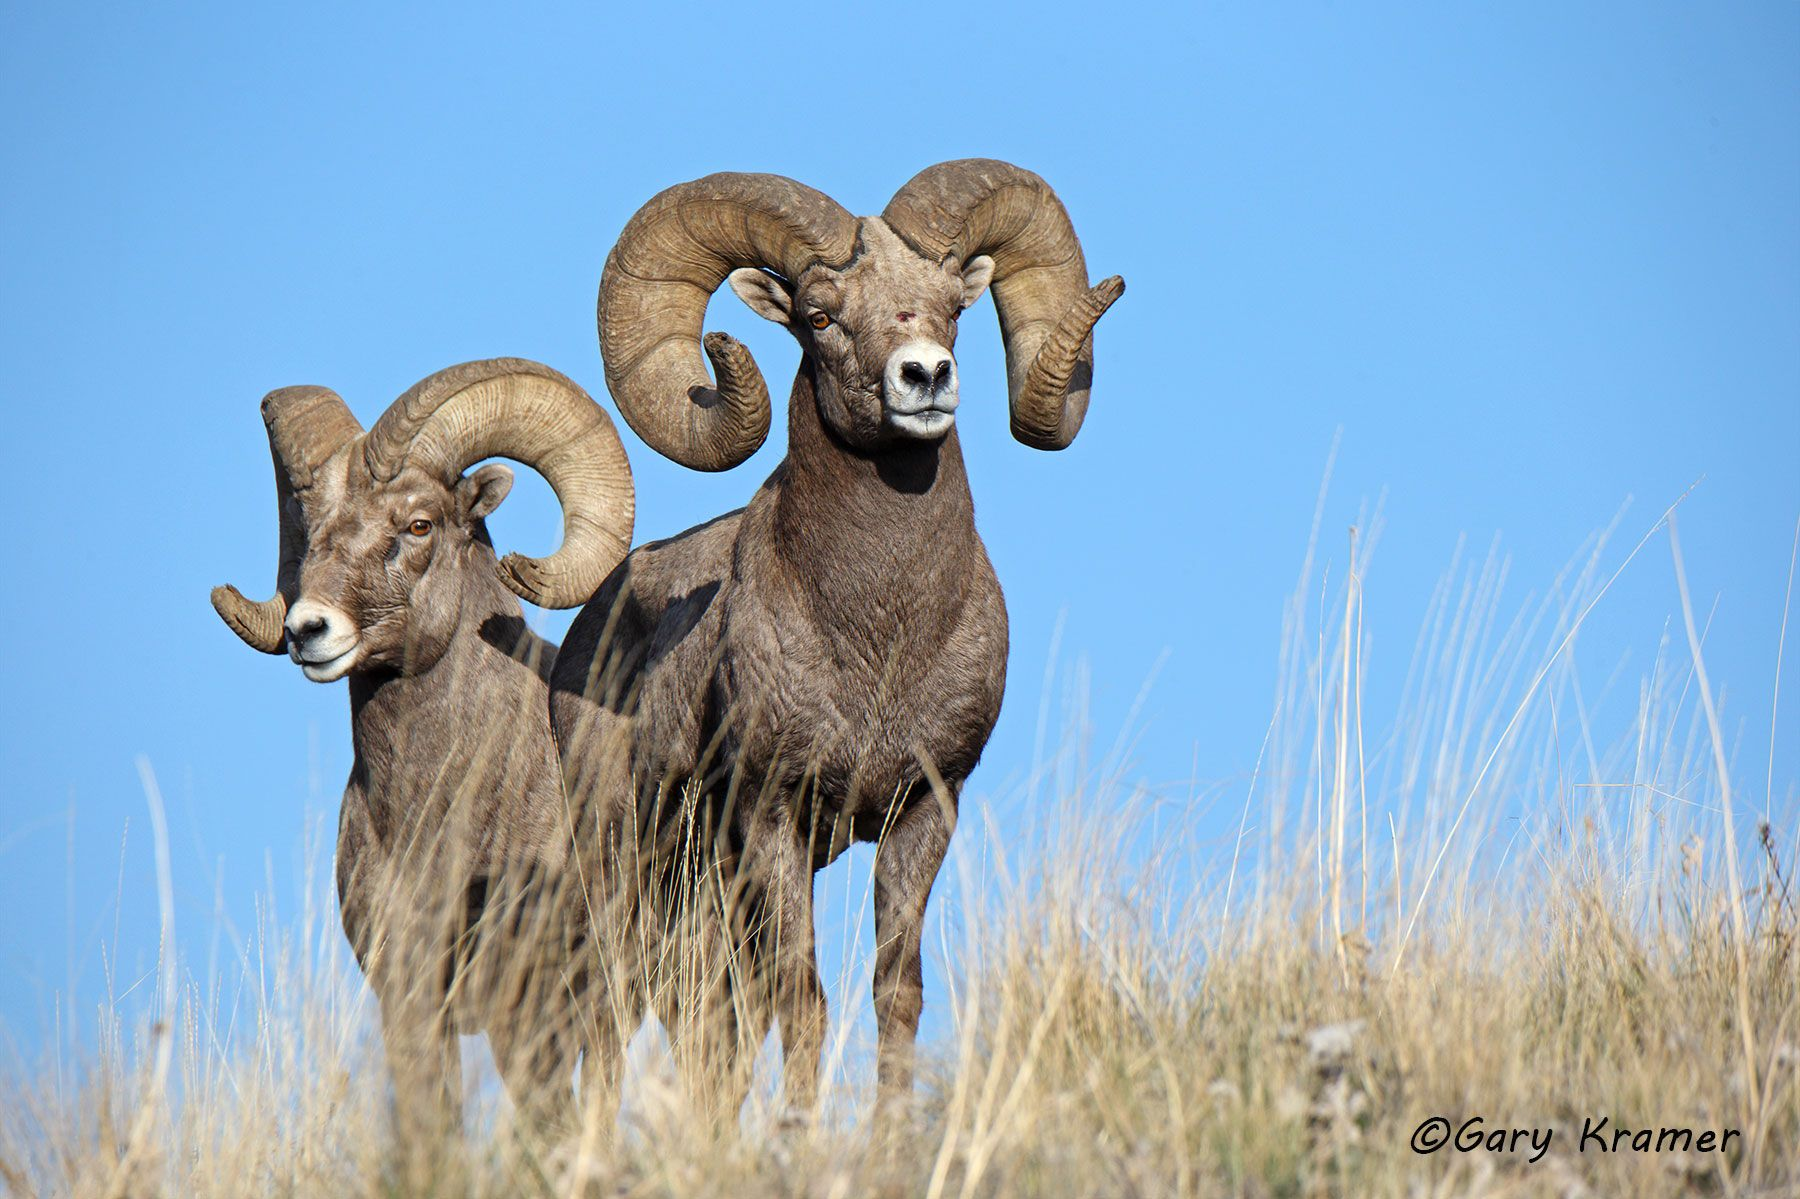 Rocky Mountain Bighorn (Ovis canadensis canadensis) - NMSBr#856d